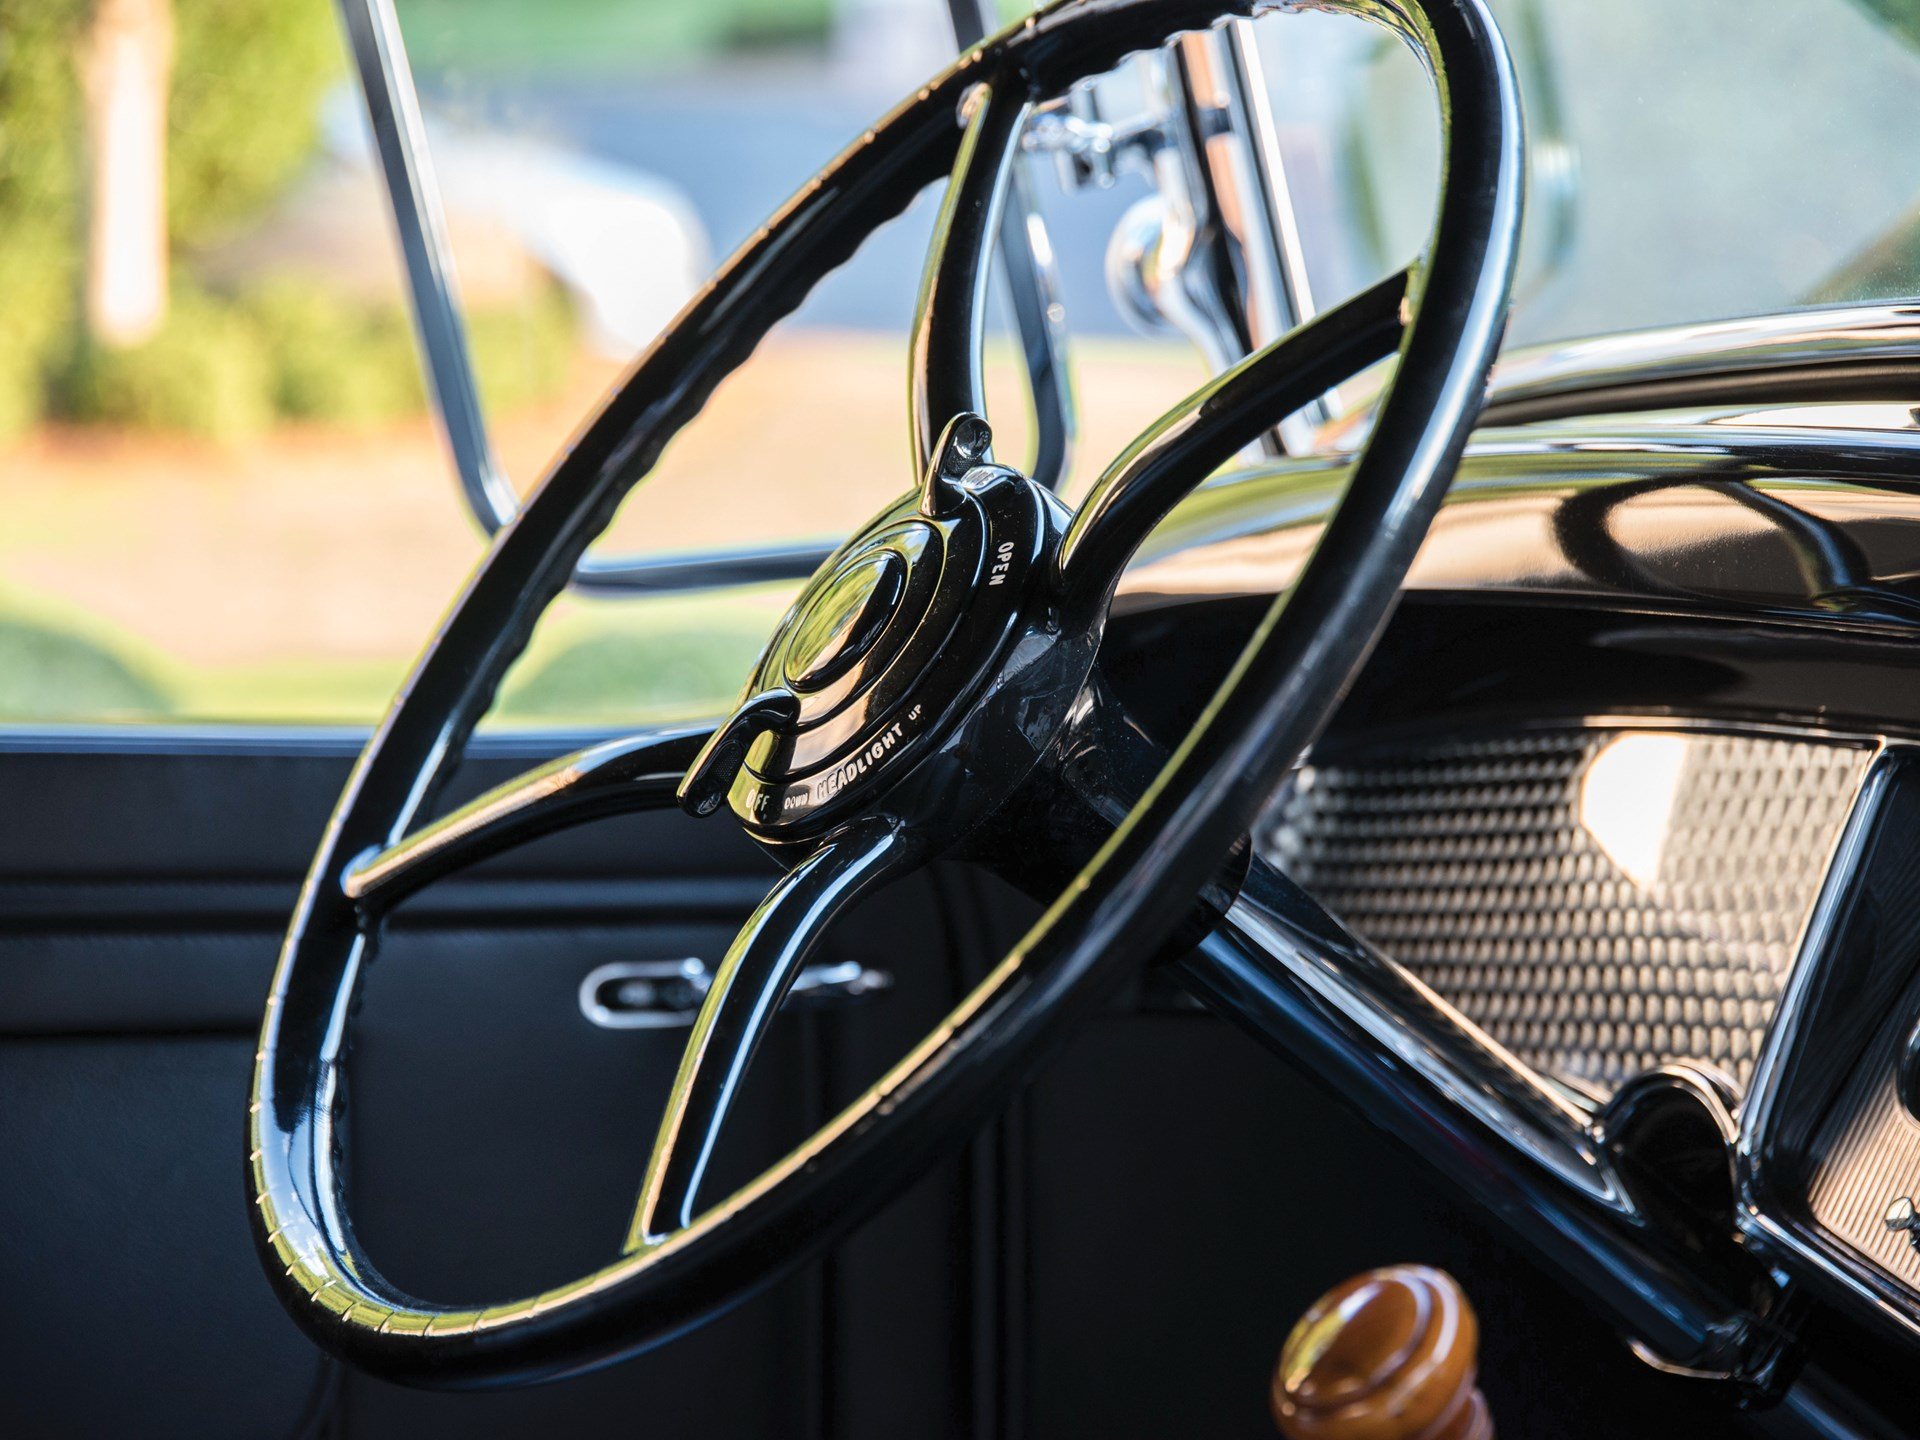 1931 Cadillac V-16 Roadster by Fleetwood